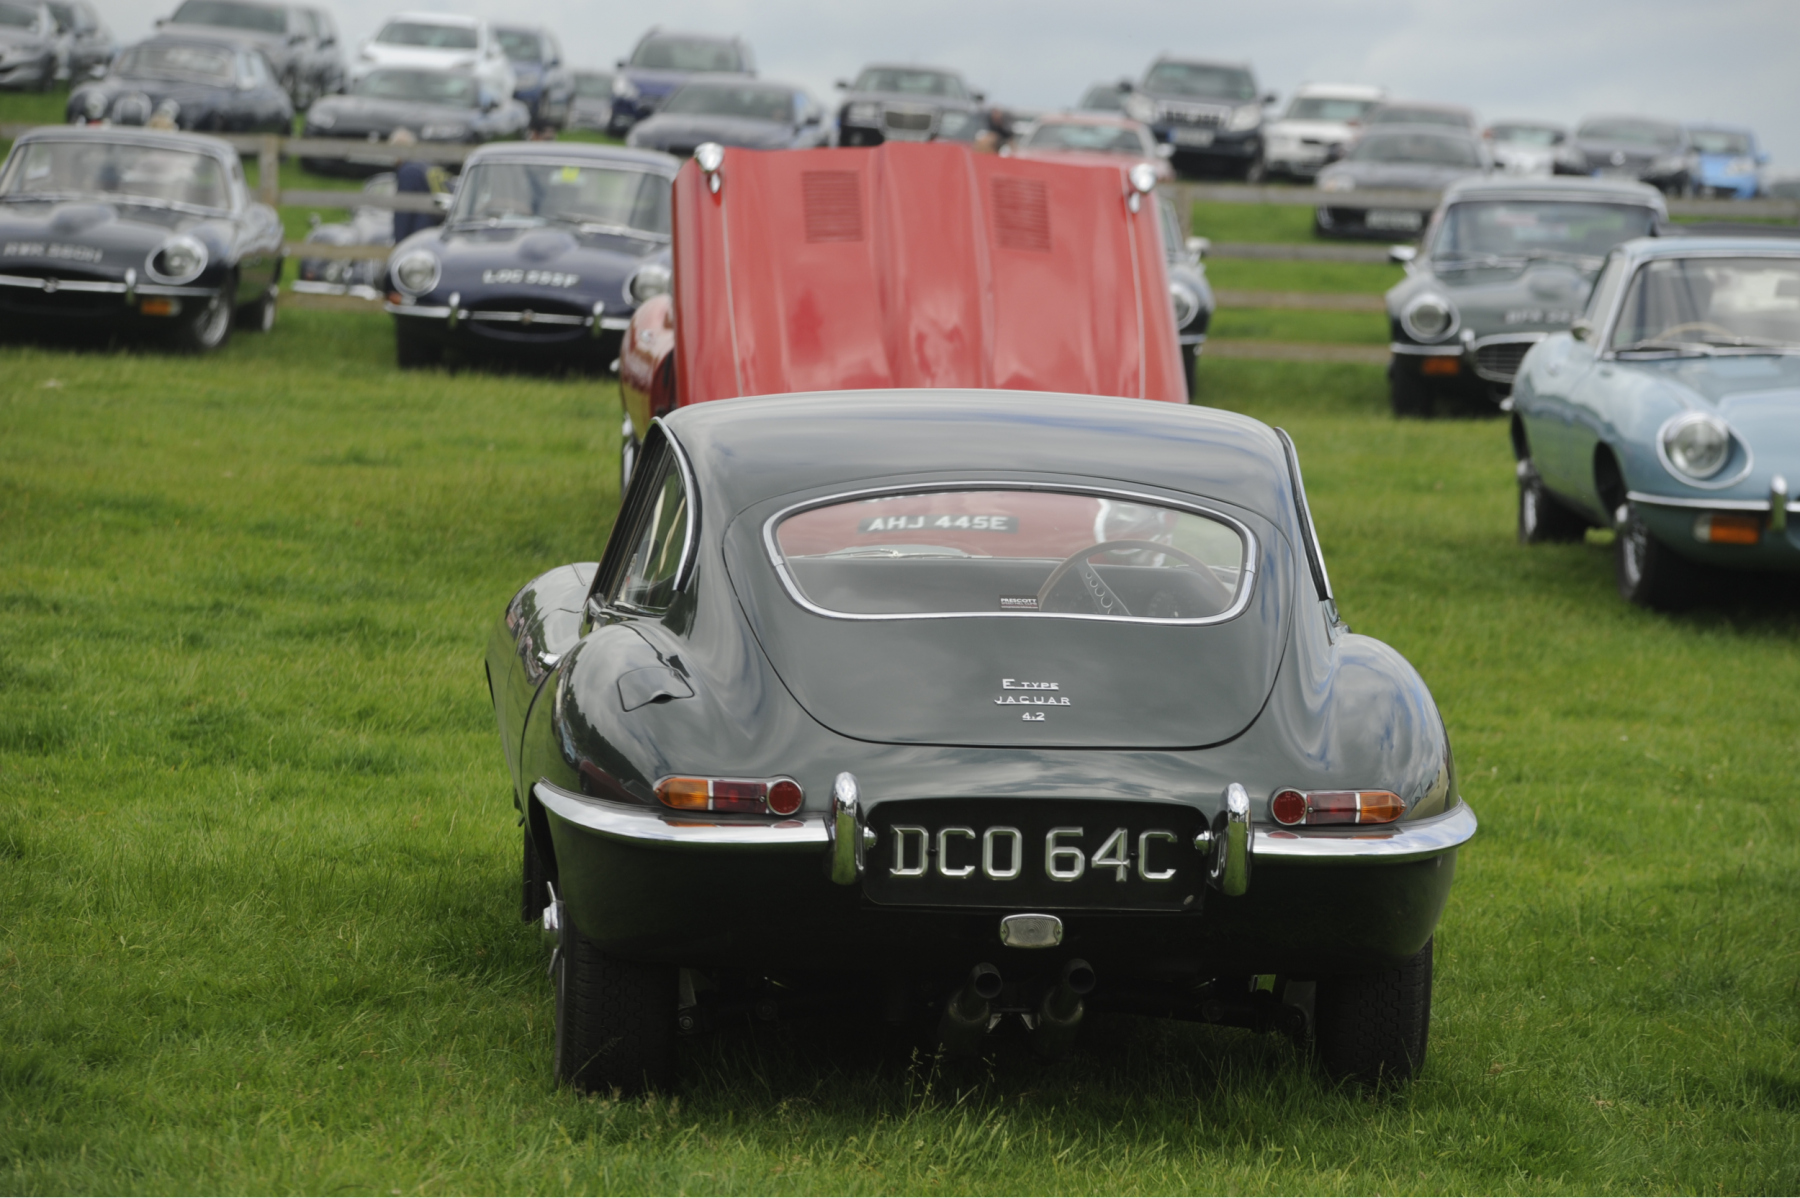 E-type-60-Saturday-photo-by-Abigail-Humphries-266